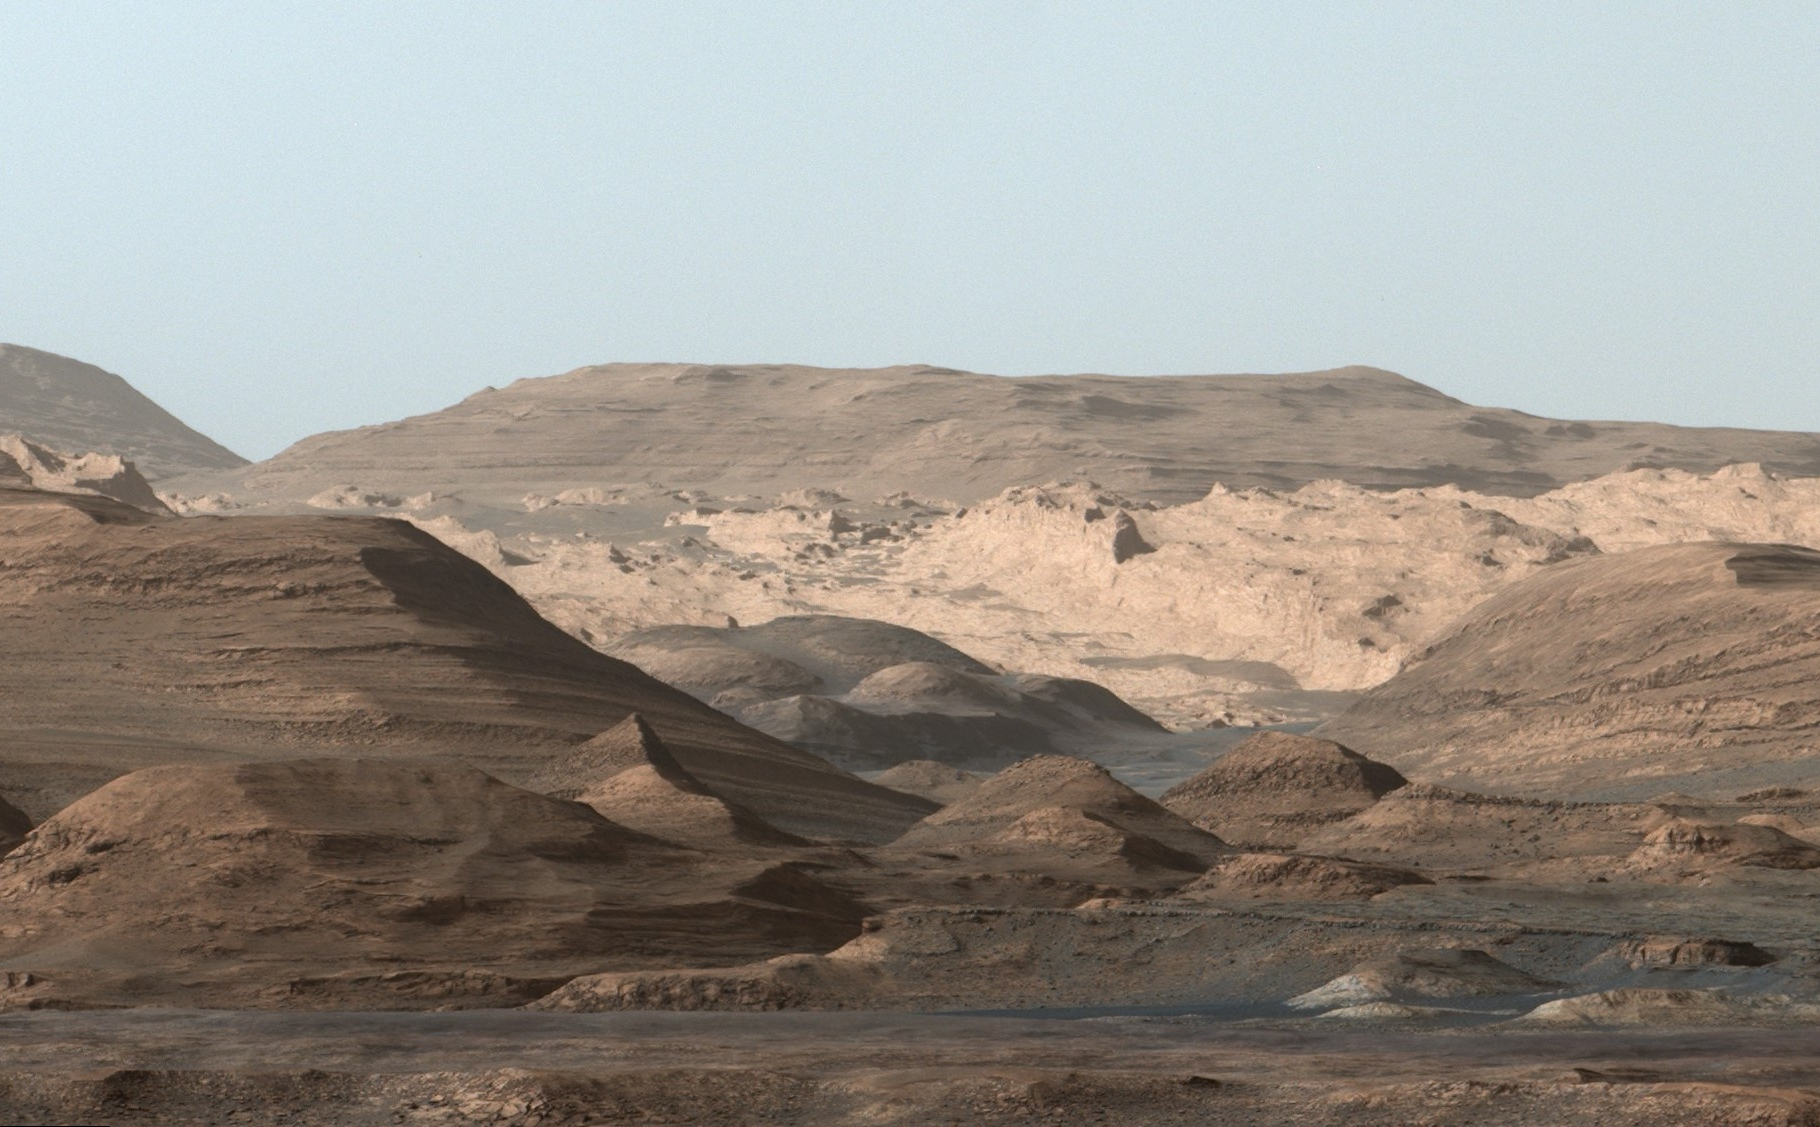 Mount Sharp Comes In Sharply